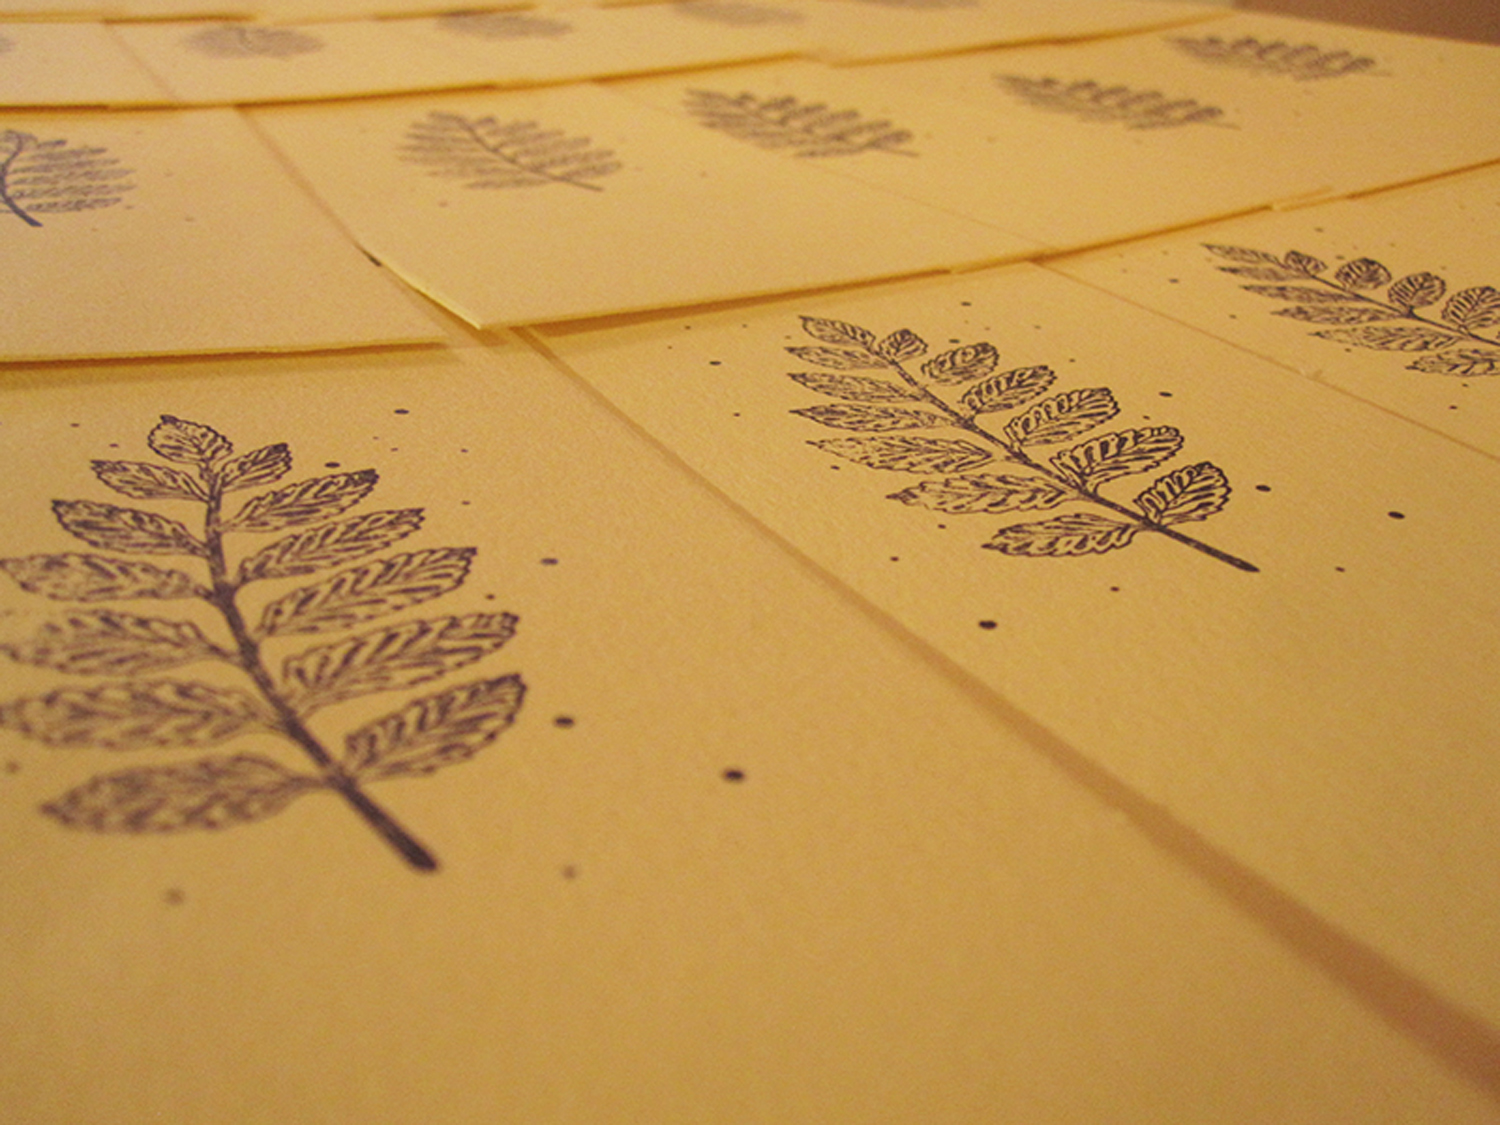 Letterpress printing samples from The Press Cycle